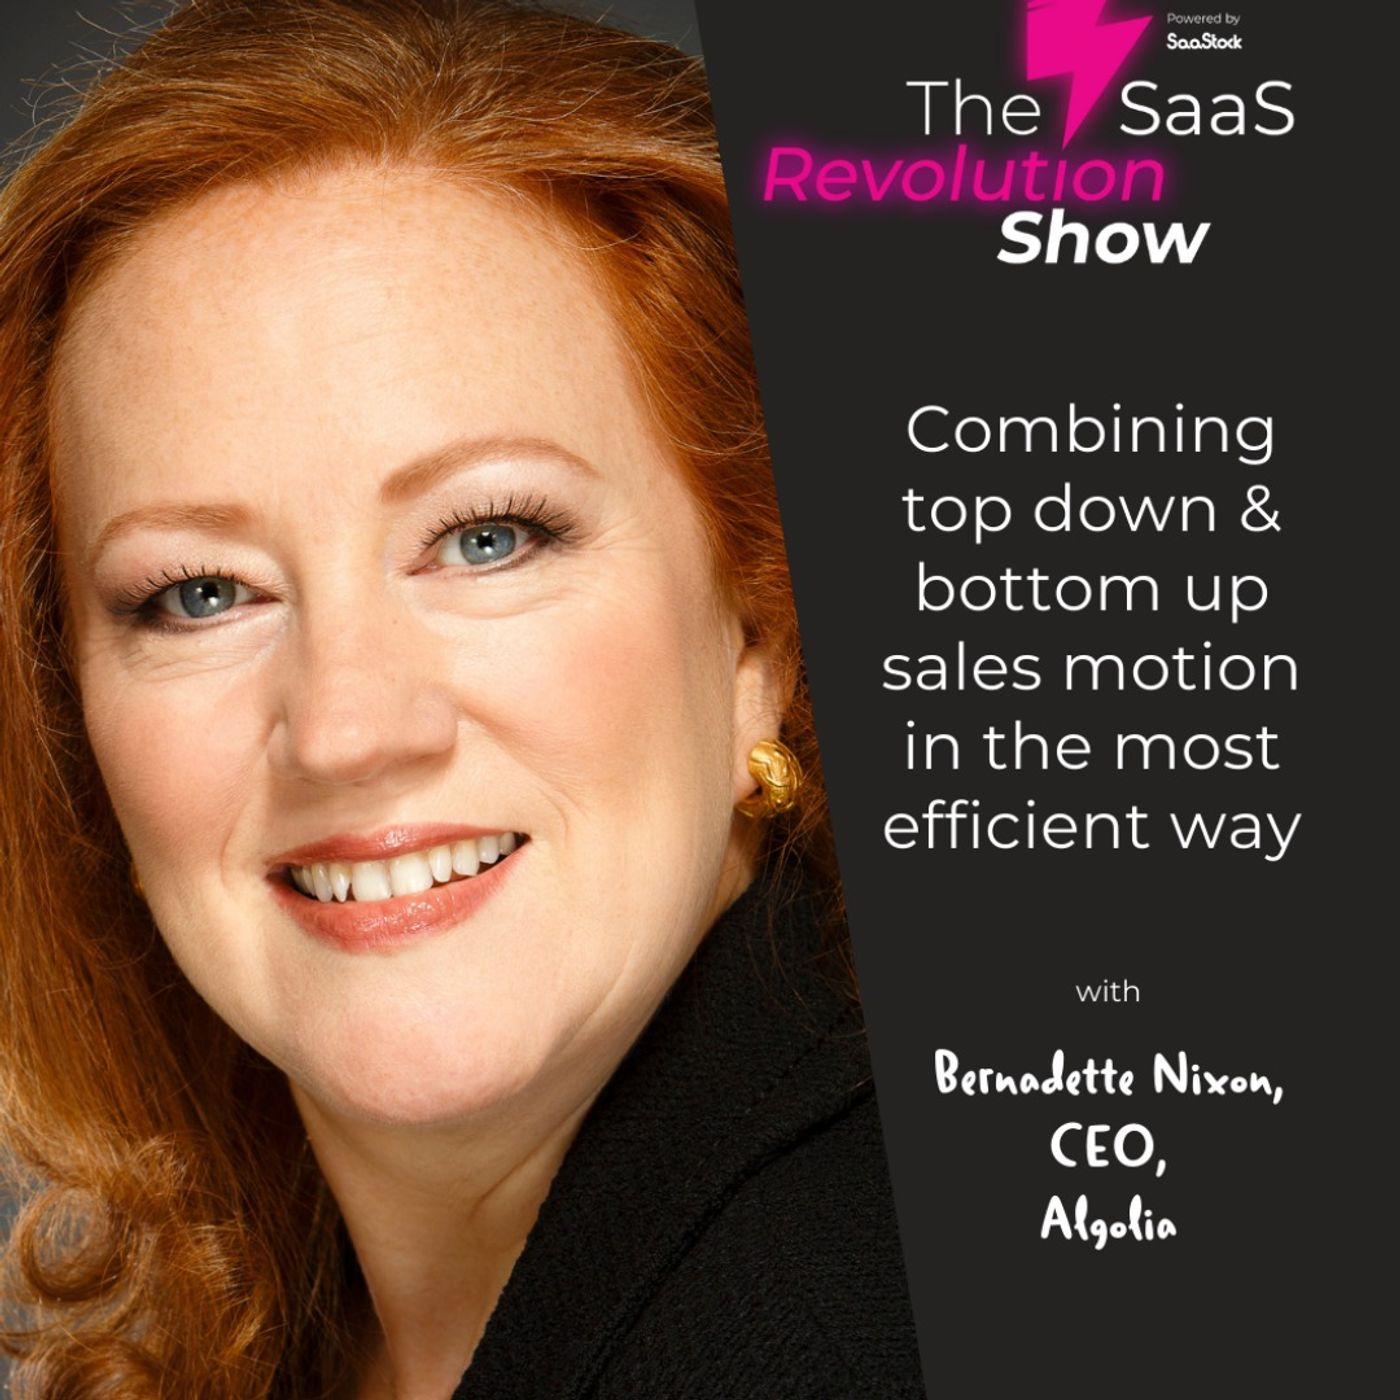 Combining top down and bottom up sales motion in the most efficient way